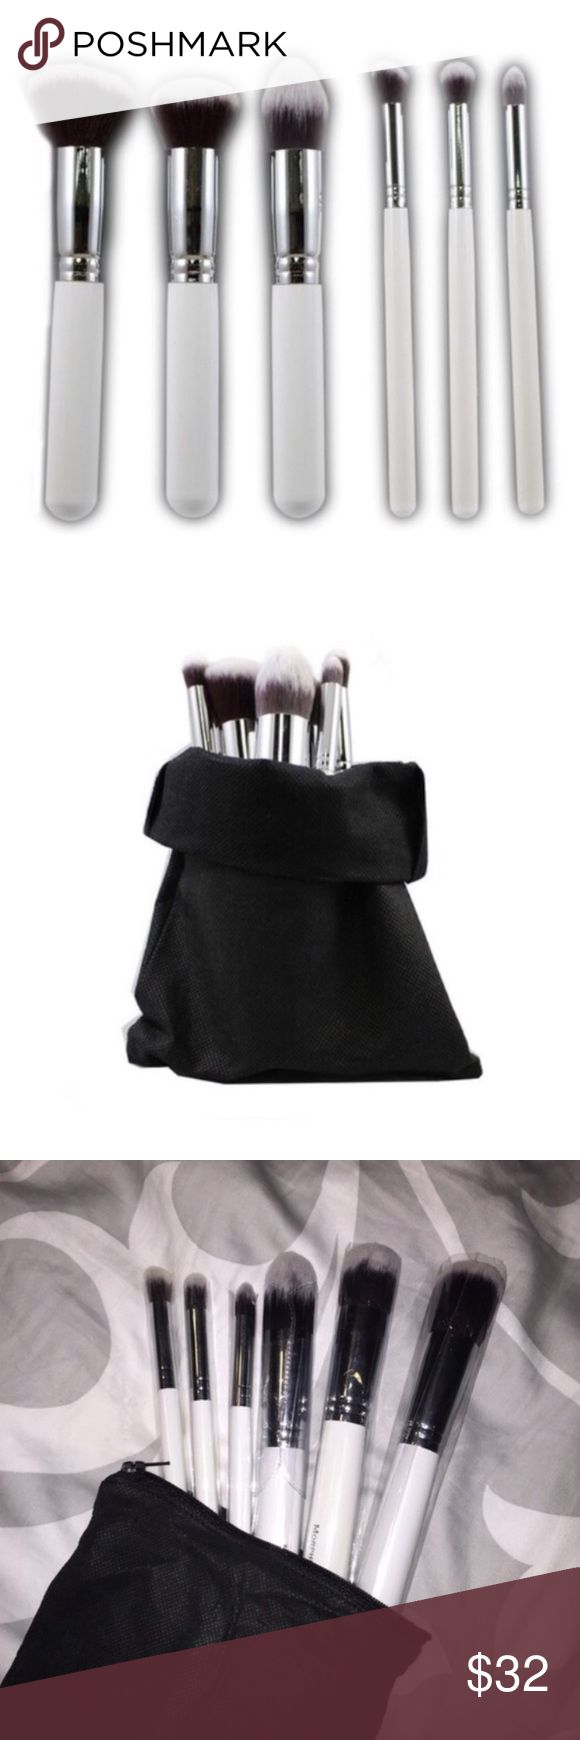 Morphe Contour Brush Set New With Tag, 🚫 trade. Authentic Morphe Brushes. 6 piece brush with a carrying case. Morphe Makeup Brushes & Tools